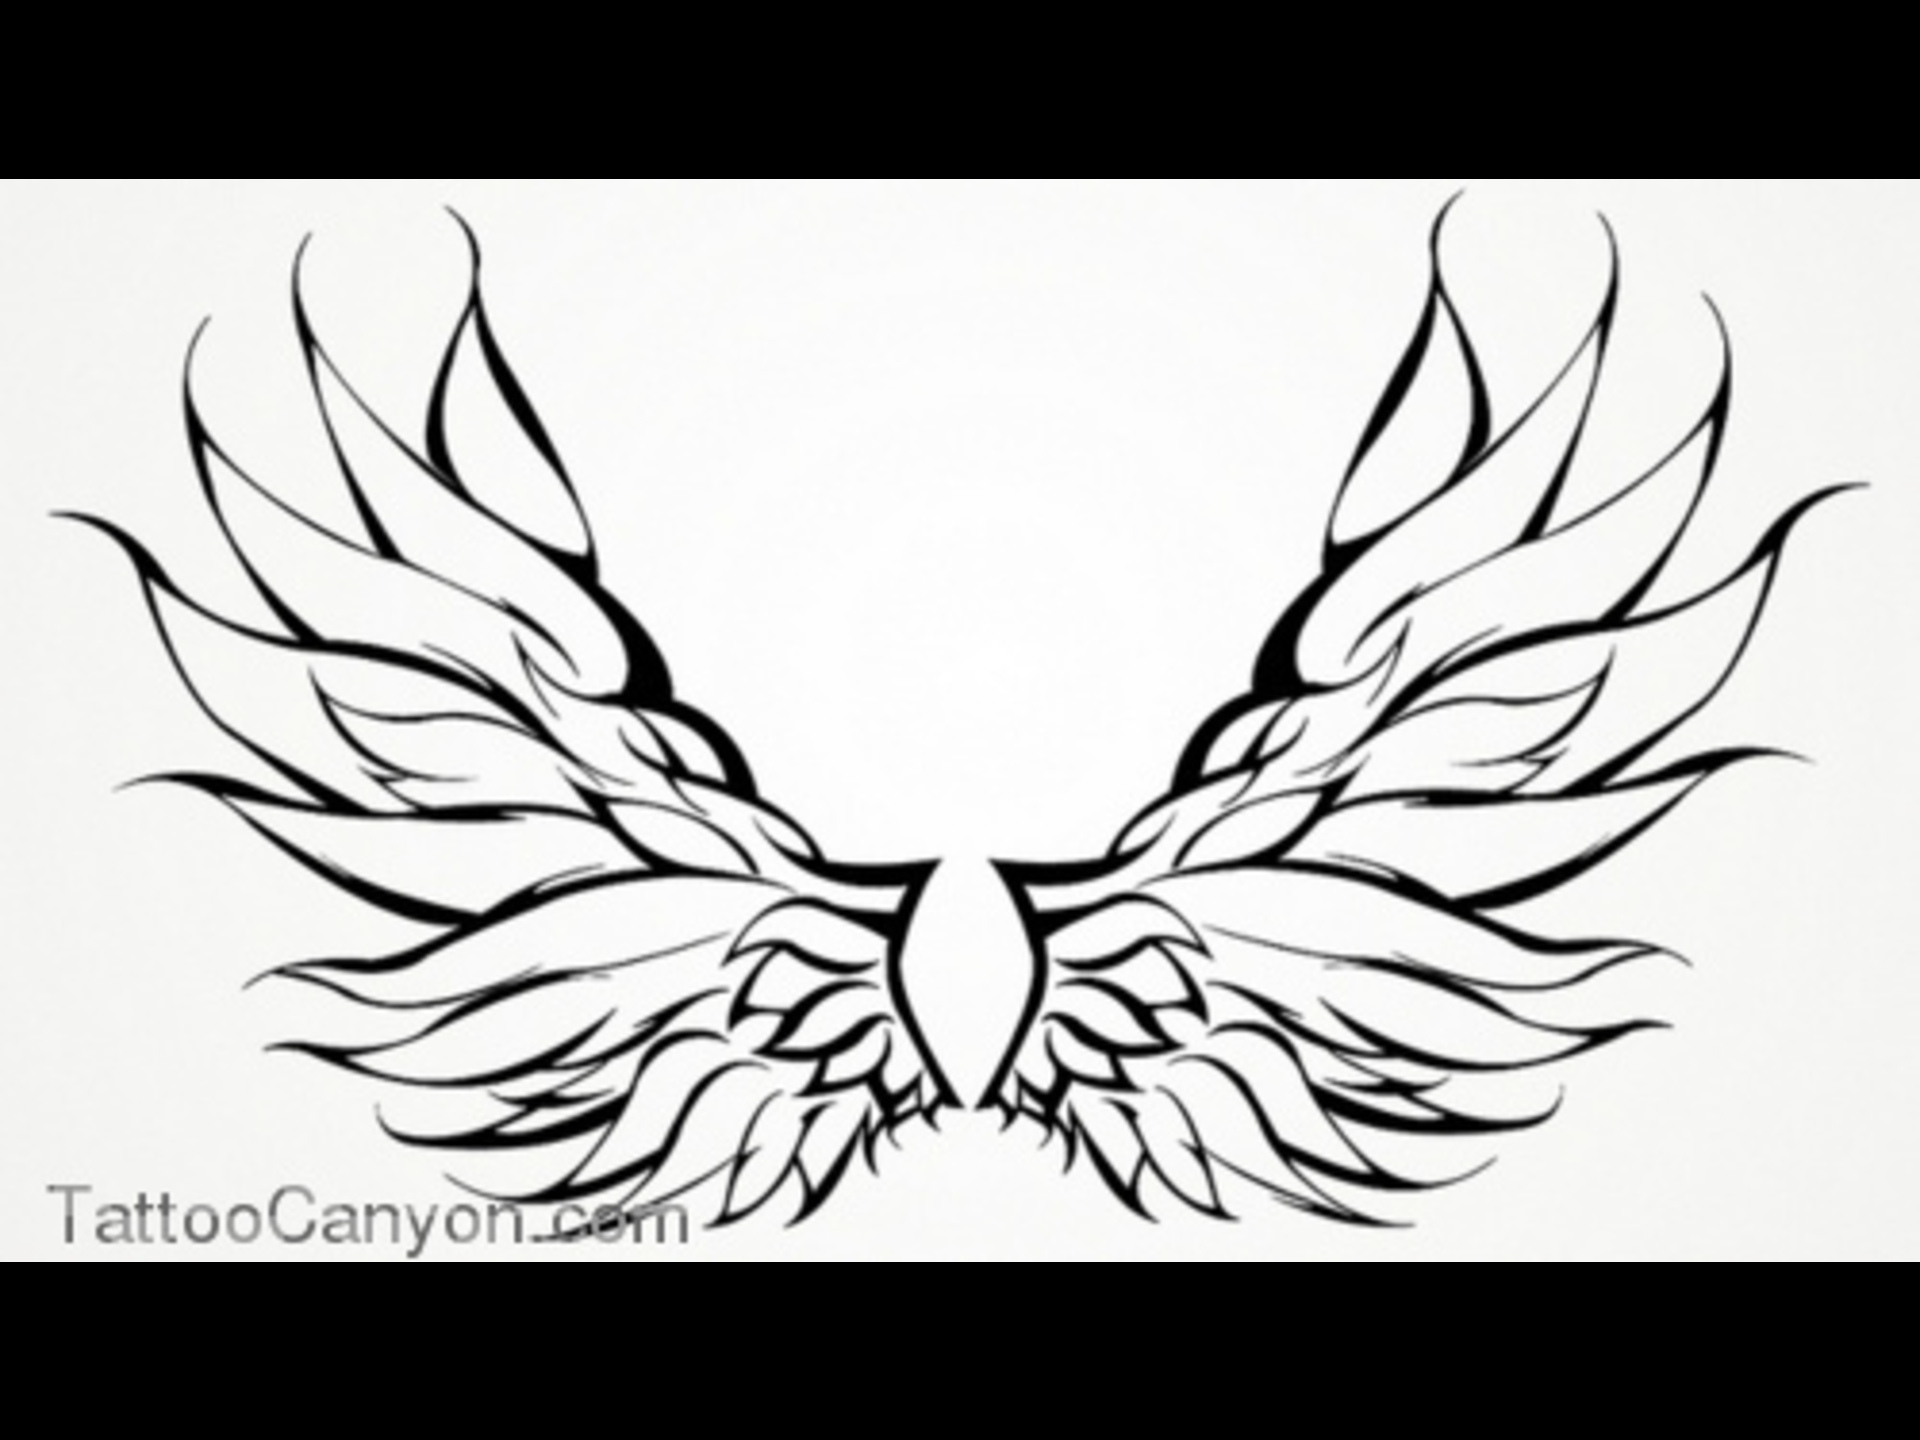 1920x1440 Fairy Wings Outline 10378 Wings Tattoo Angel Tribal Outline Design